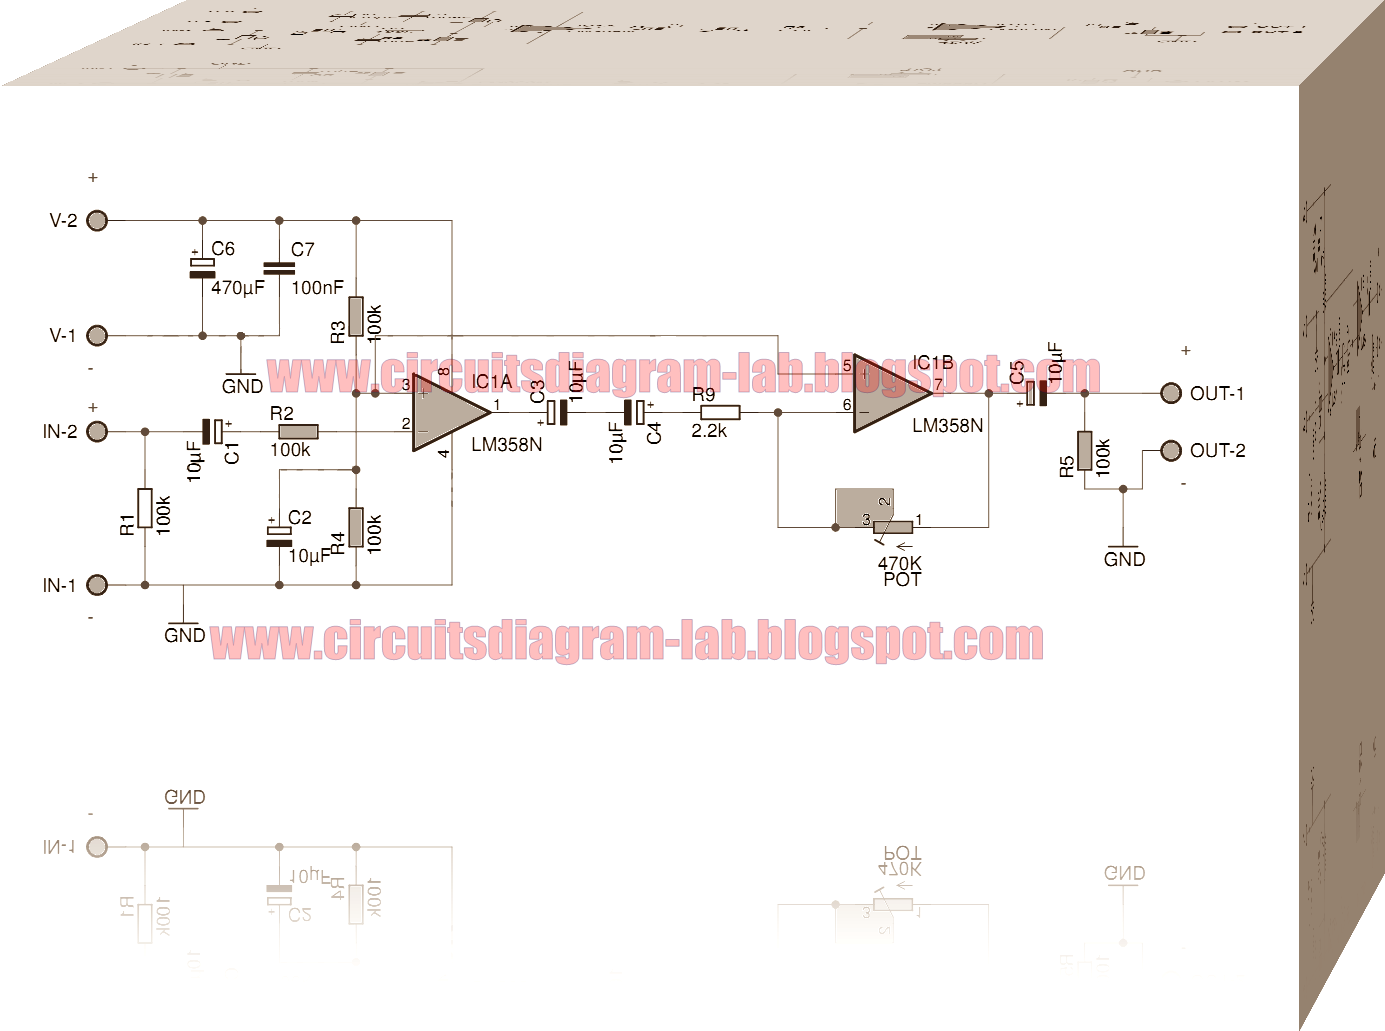 Pre Amplifier Integrated Circuit Lm358 Dual Op Amp Circuits Lm358nlow Power Operational Amplifiers Schematic Of The Audio